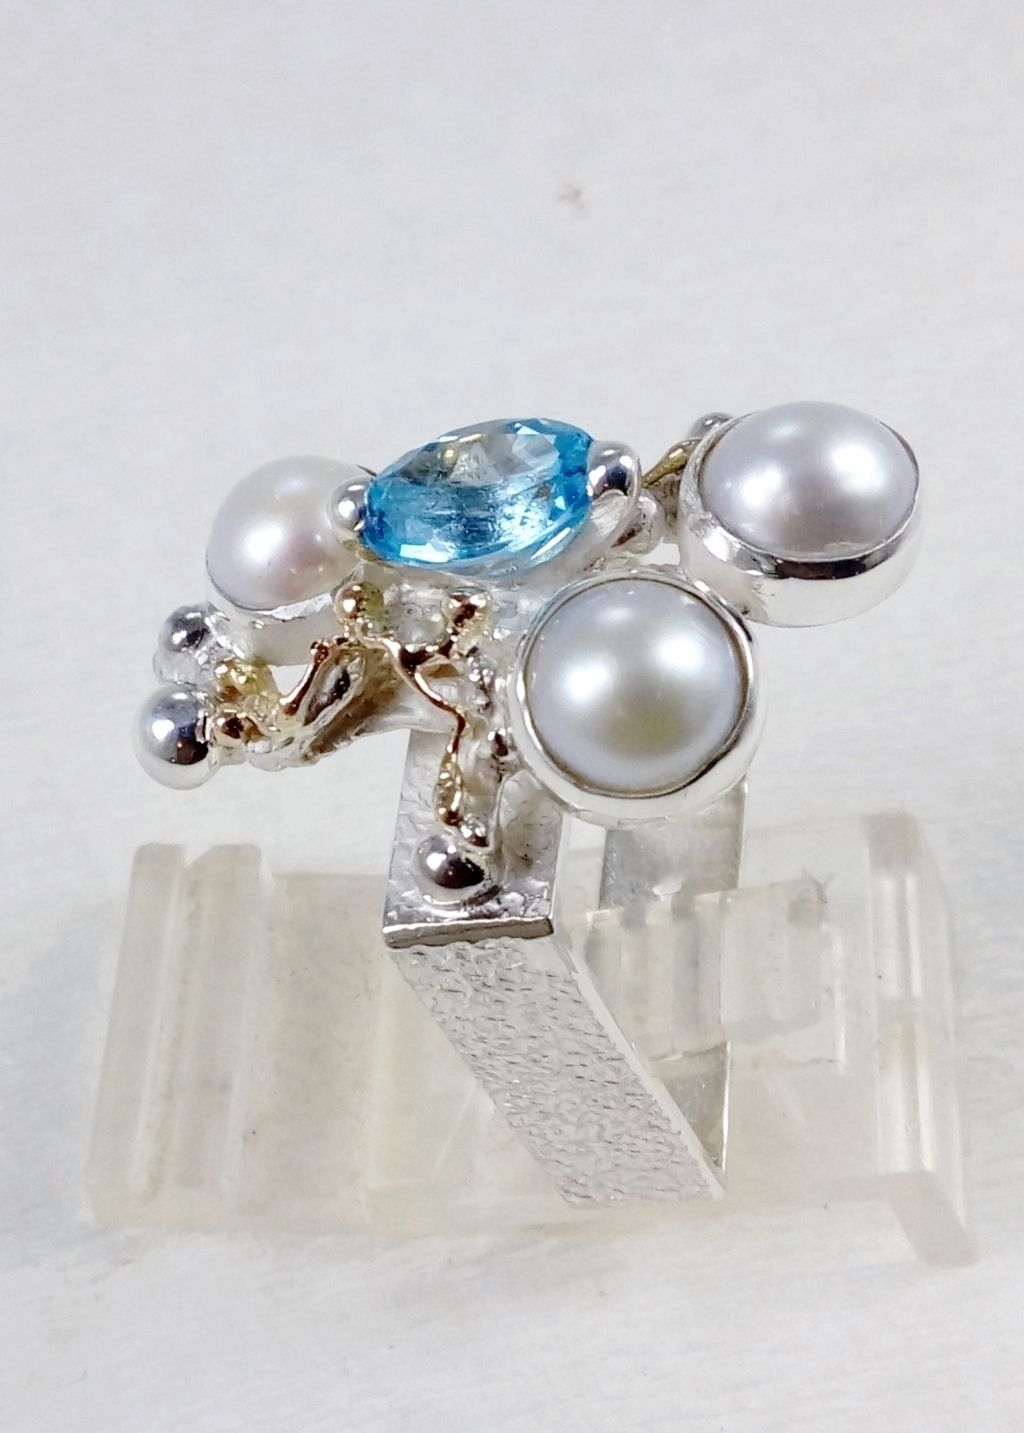 gregory pyra piro square ring #8391, sterling silver and 14k gold artisan jewellery, ring with blue topaz and pearl, sterling silver and 14 karat gold ring